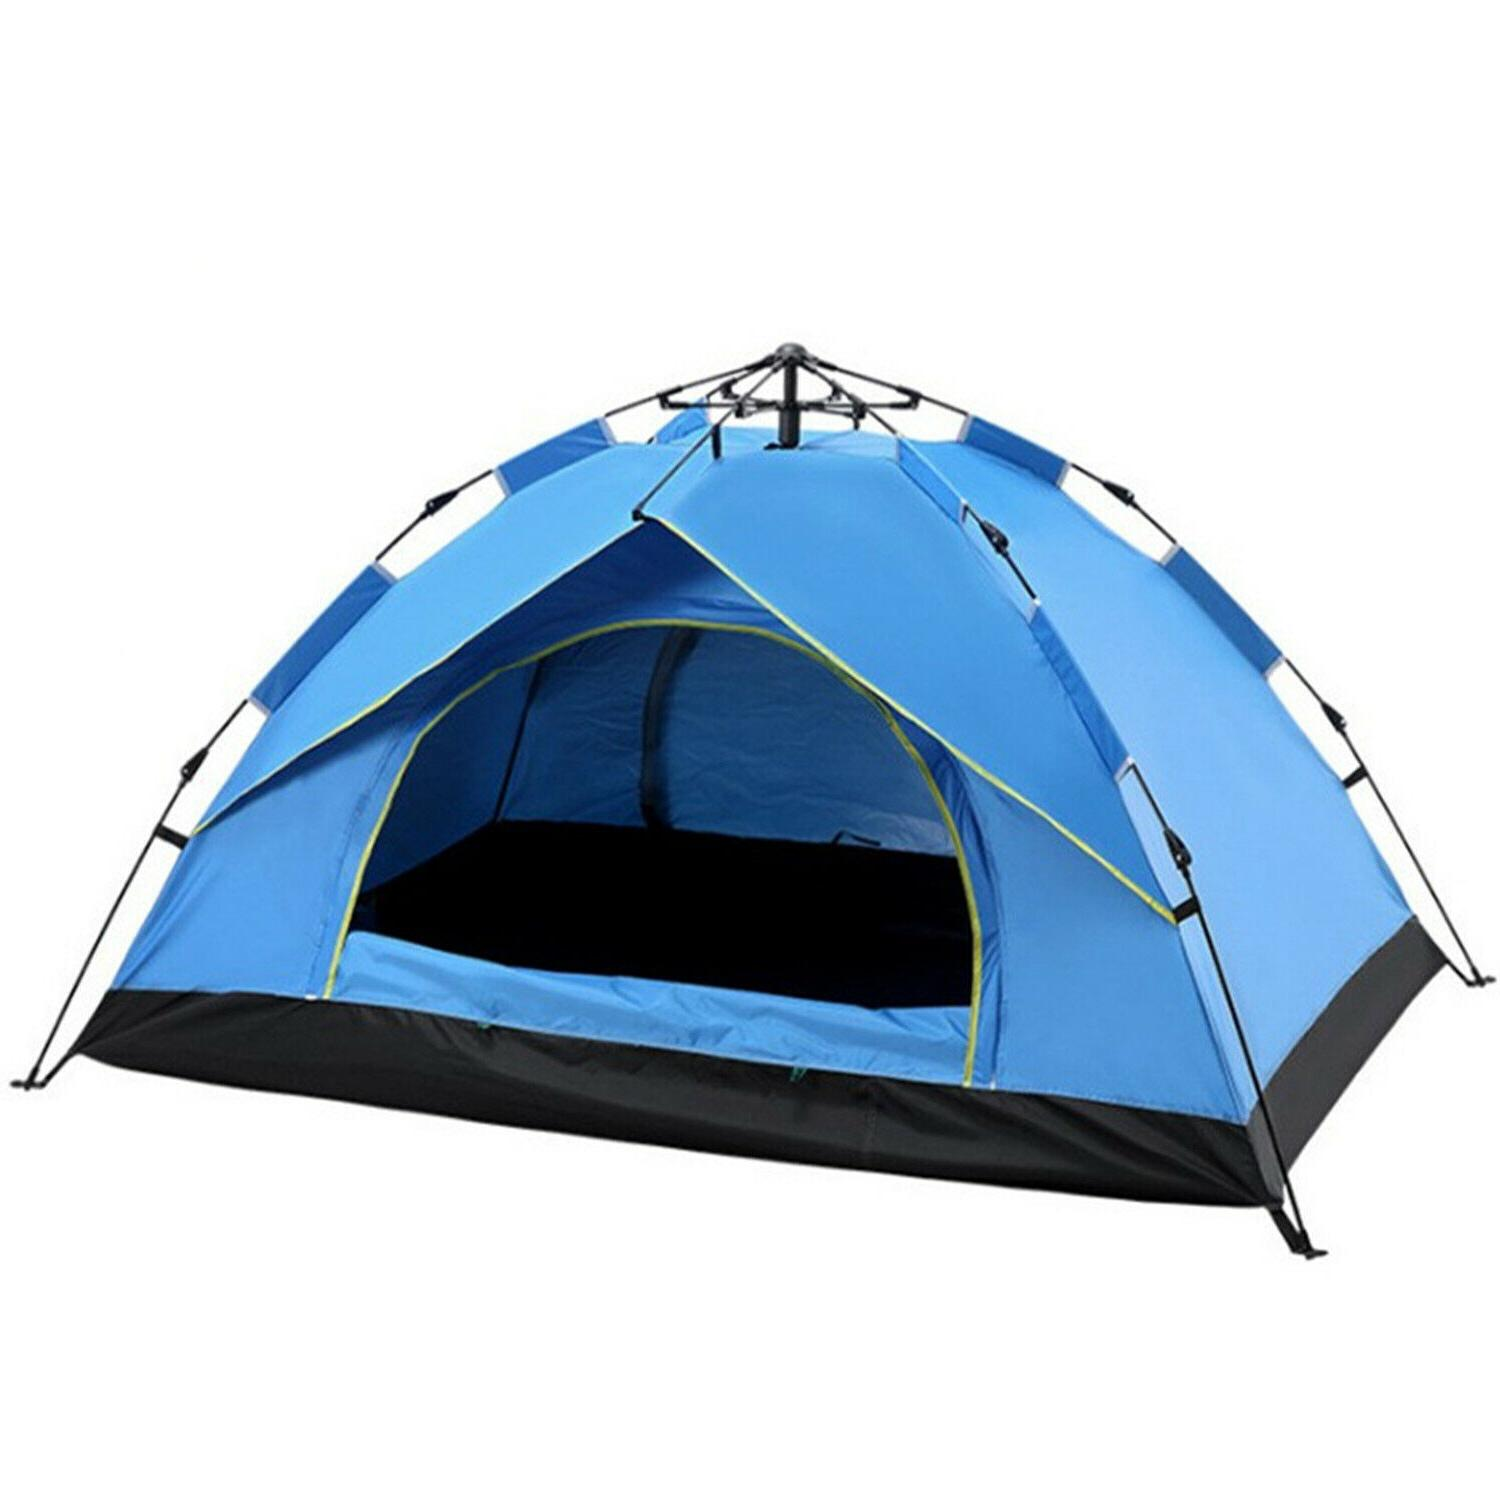 Waterproof Outdoor PopUp Camping Hiking Canopy